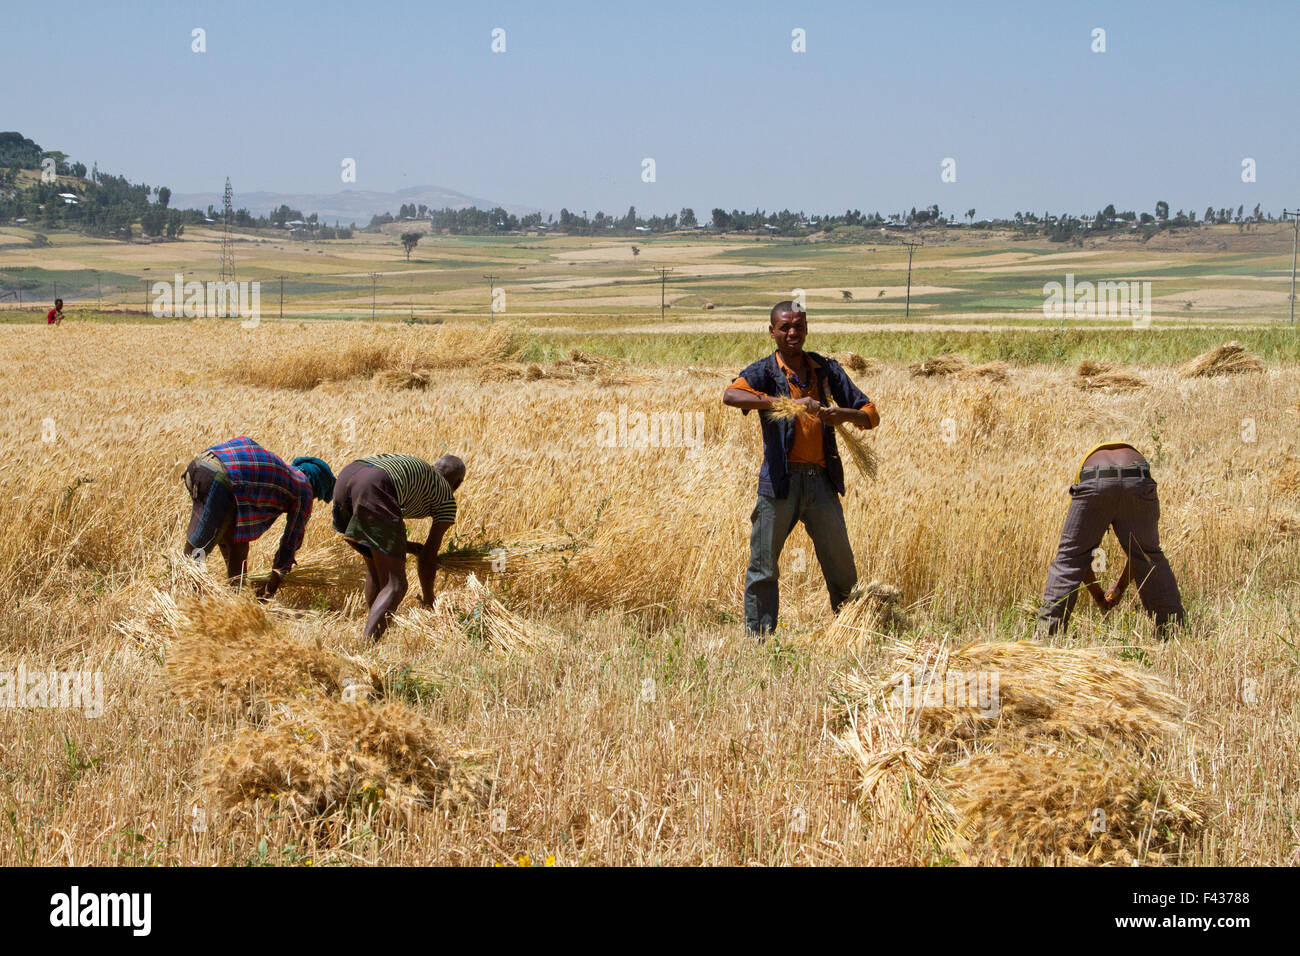 Men harvesting wheat with a sickle. Photographed in Ethiopia - Stock Image